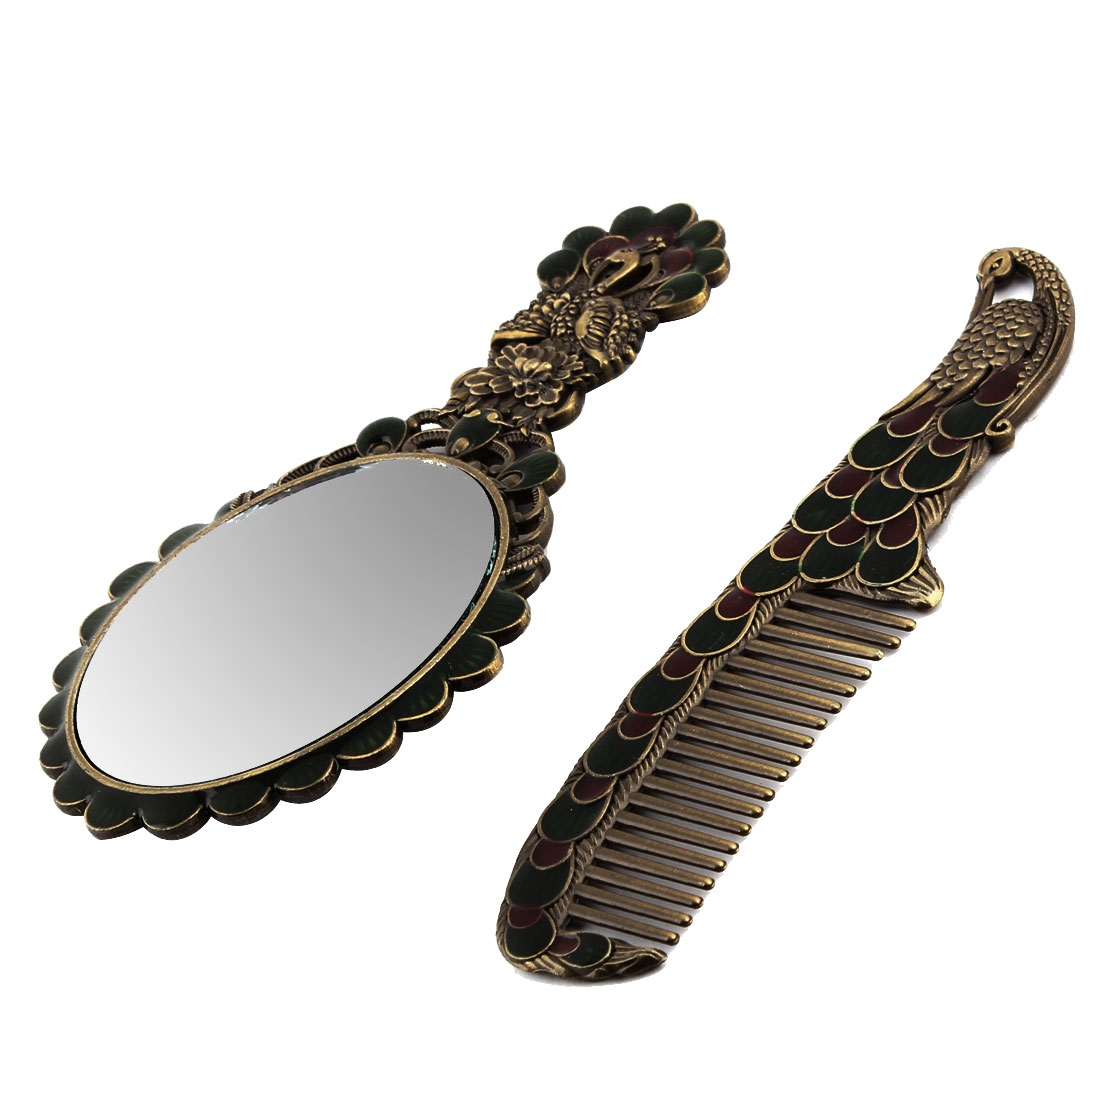 Online Get Cheap Vintage Style Mirrors Aliexpress Alibaba Group Within Vintage Style Mirrors Cheap (Image 9 of 15)